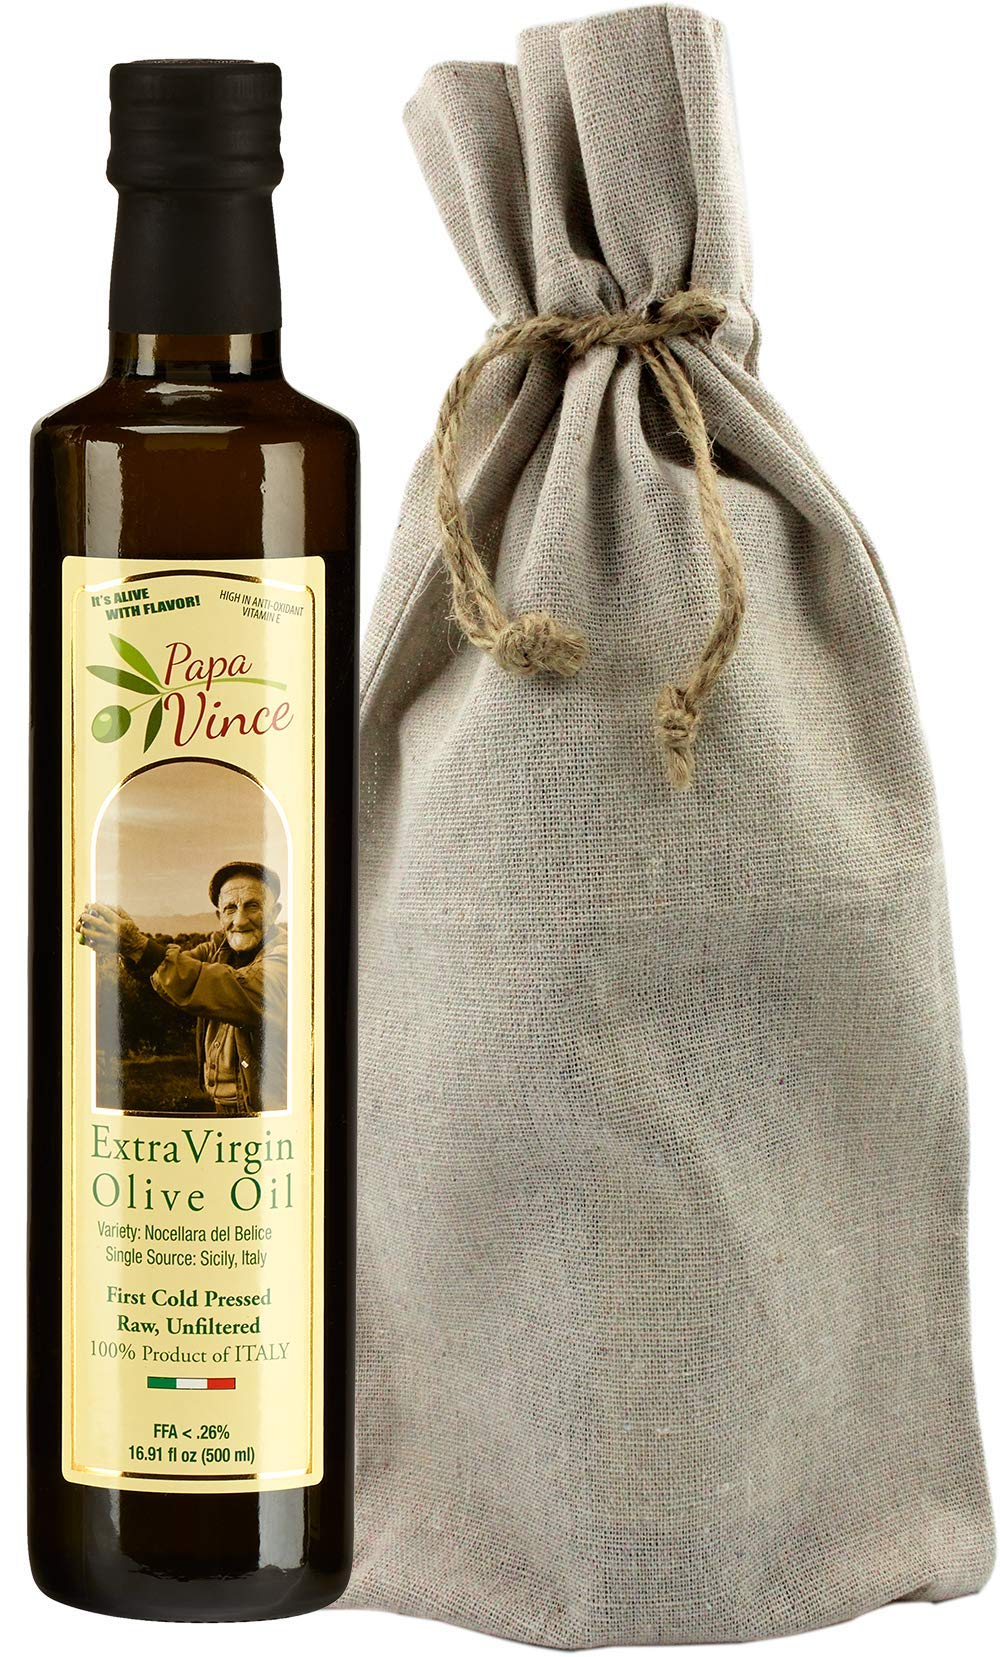 Papa Vince Olive Oil Gift - Extra Virgin First Cold Pressed from our family in Sicily, Italy, Unblended, Unfiltered, Unrefined, Robust, Rich in Antioxidant   Burlap bag   16.9 fl oz by Papa Vince (Image #2)